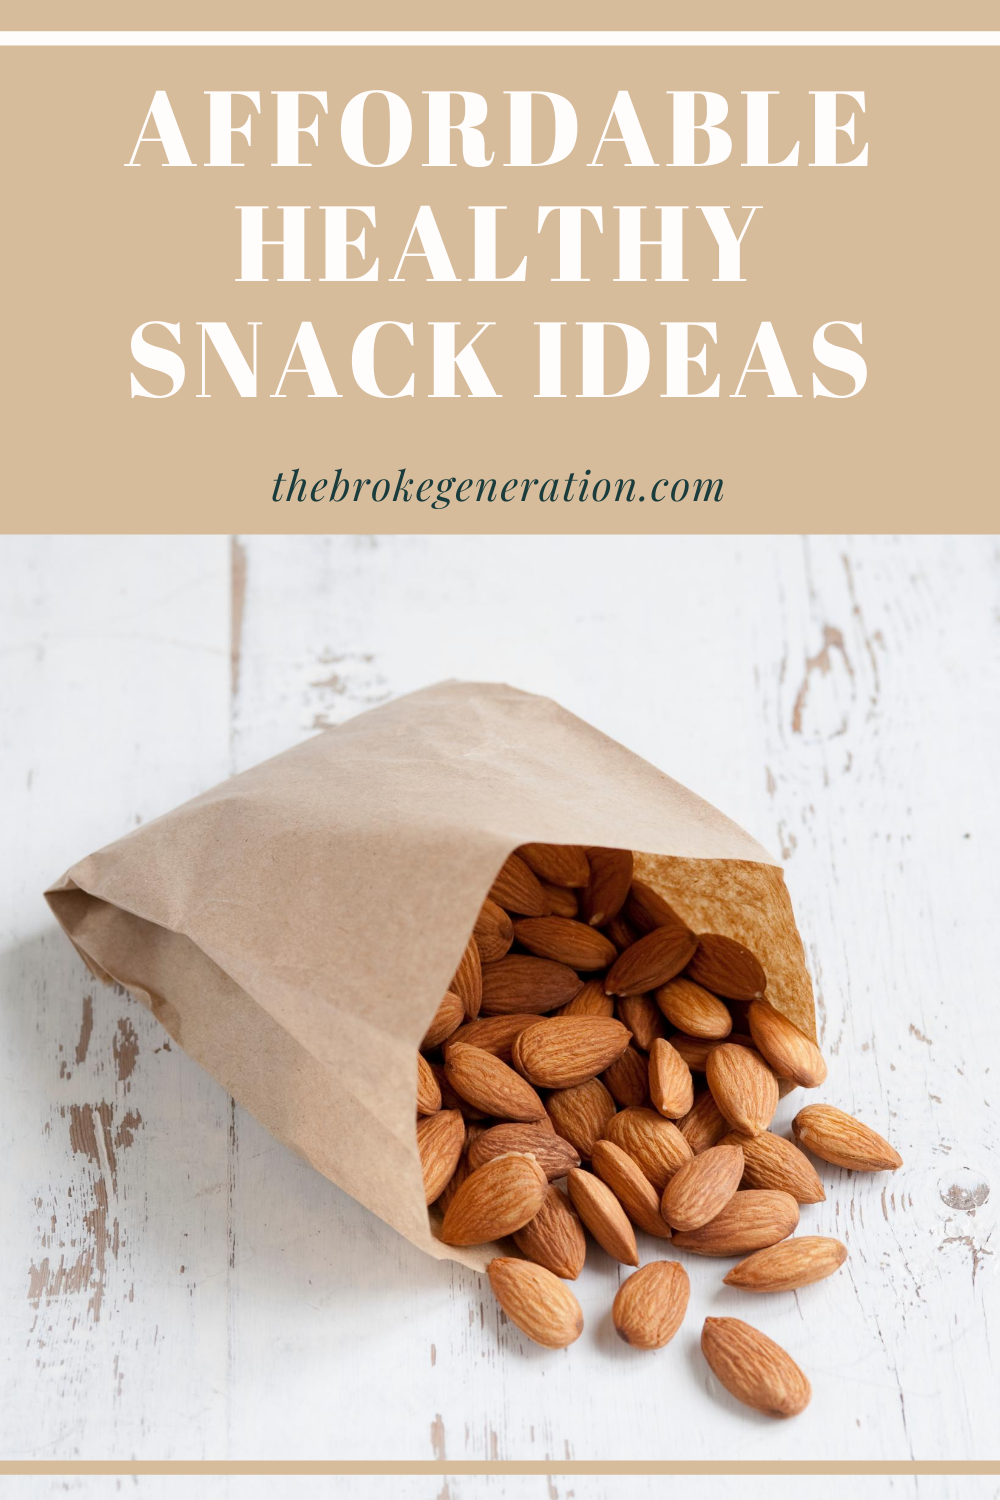 Affordable Healthy Snack Ideas